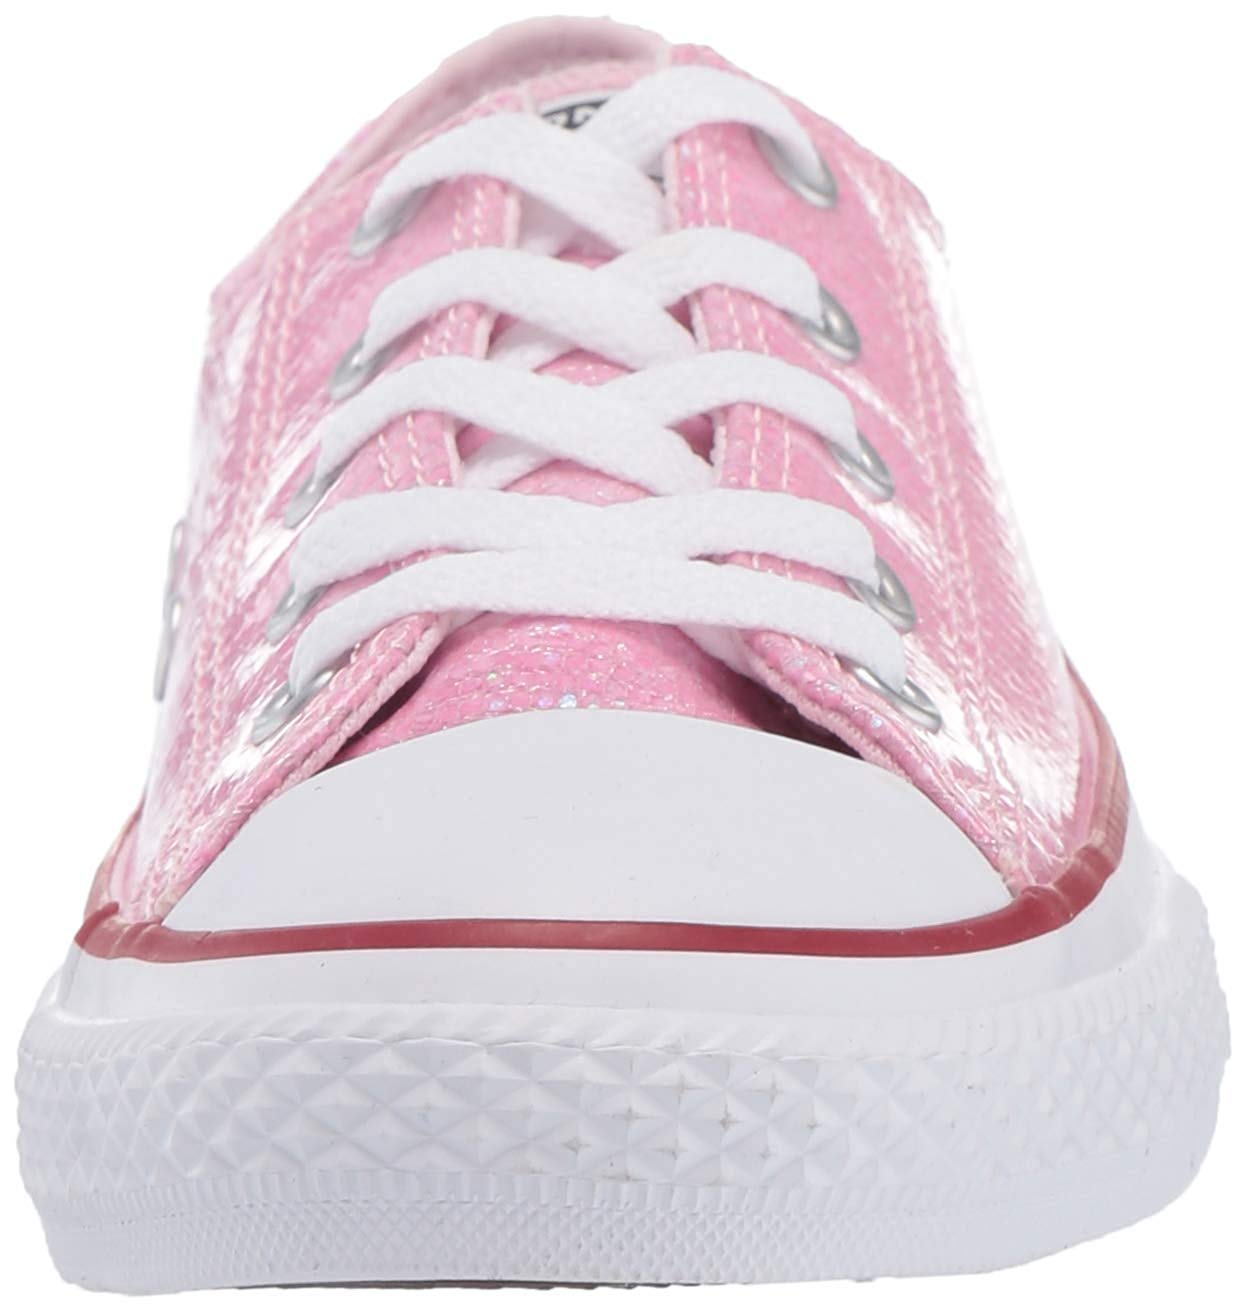 Details about Converse Kids' Chuck Taylor All Star Sport Sparkle Low Top, Pink, Size 12.5 3gto